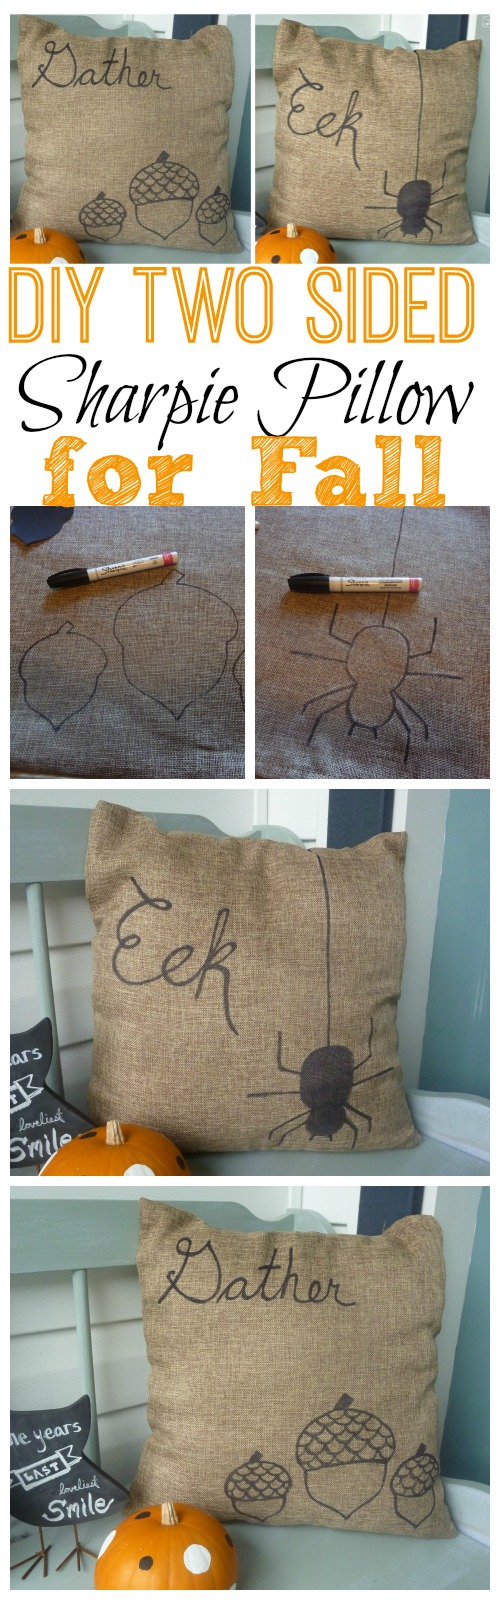 Quick and Easy DIY Two-Sided Sharpie Pillow for Fall